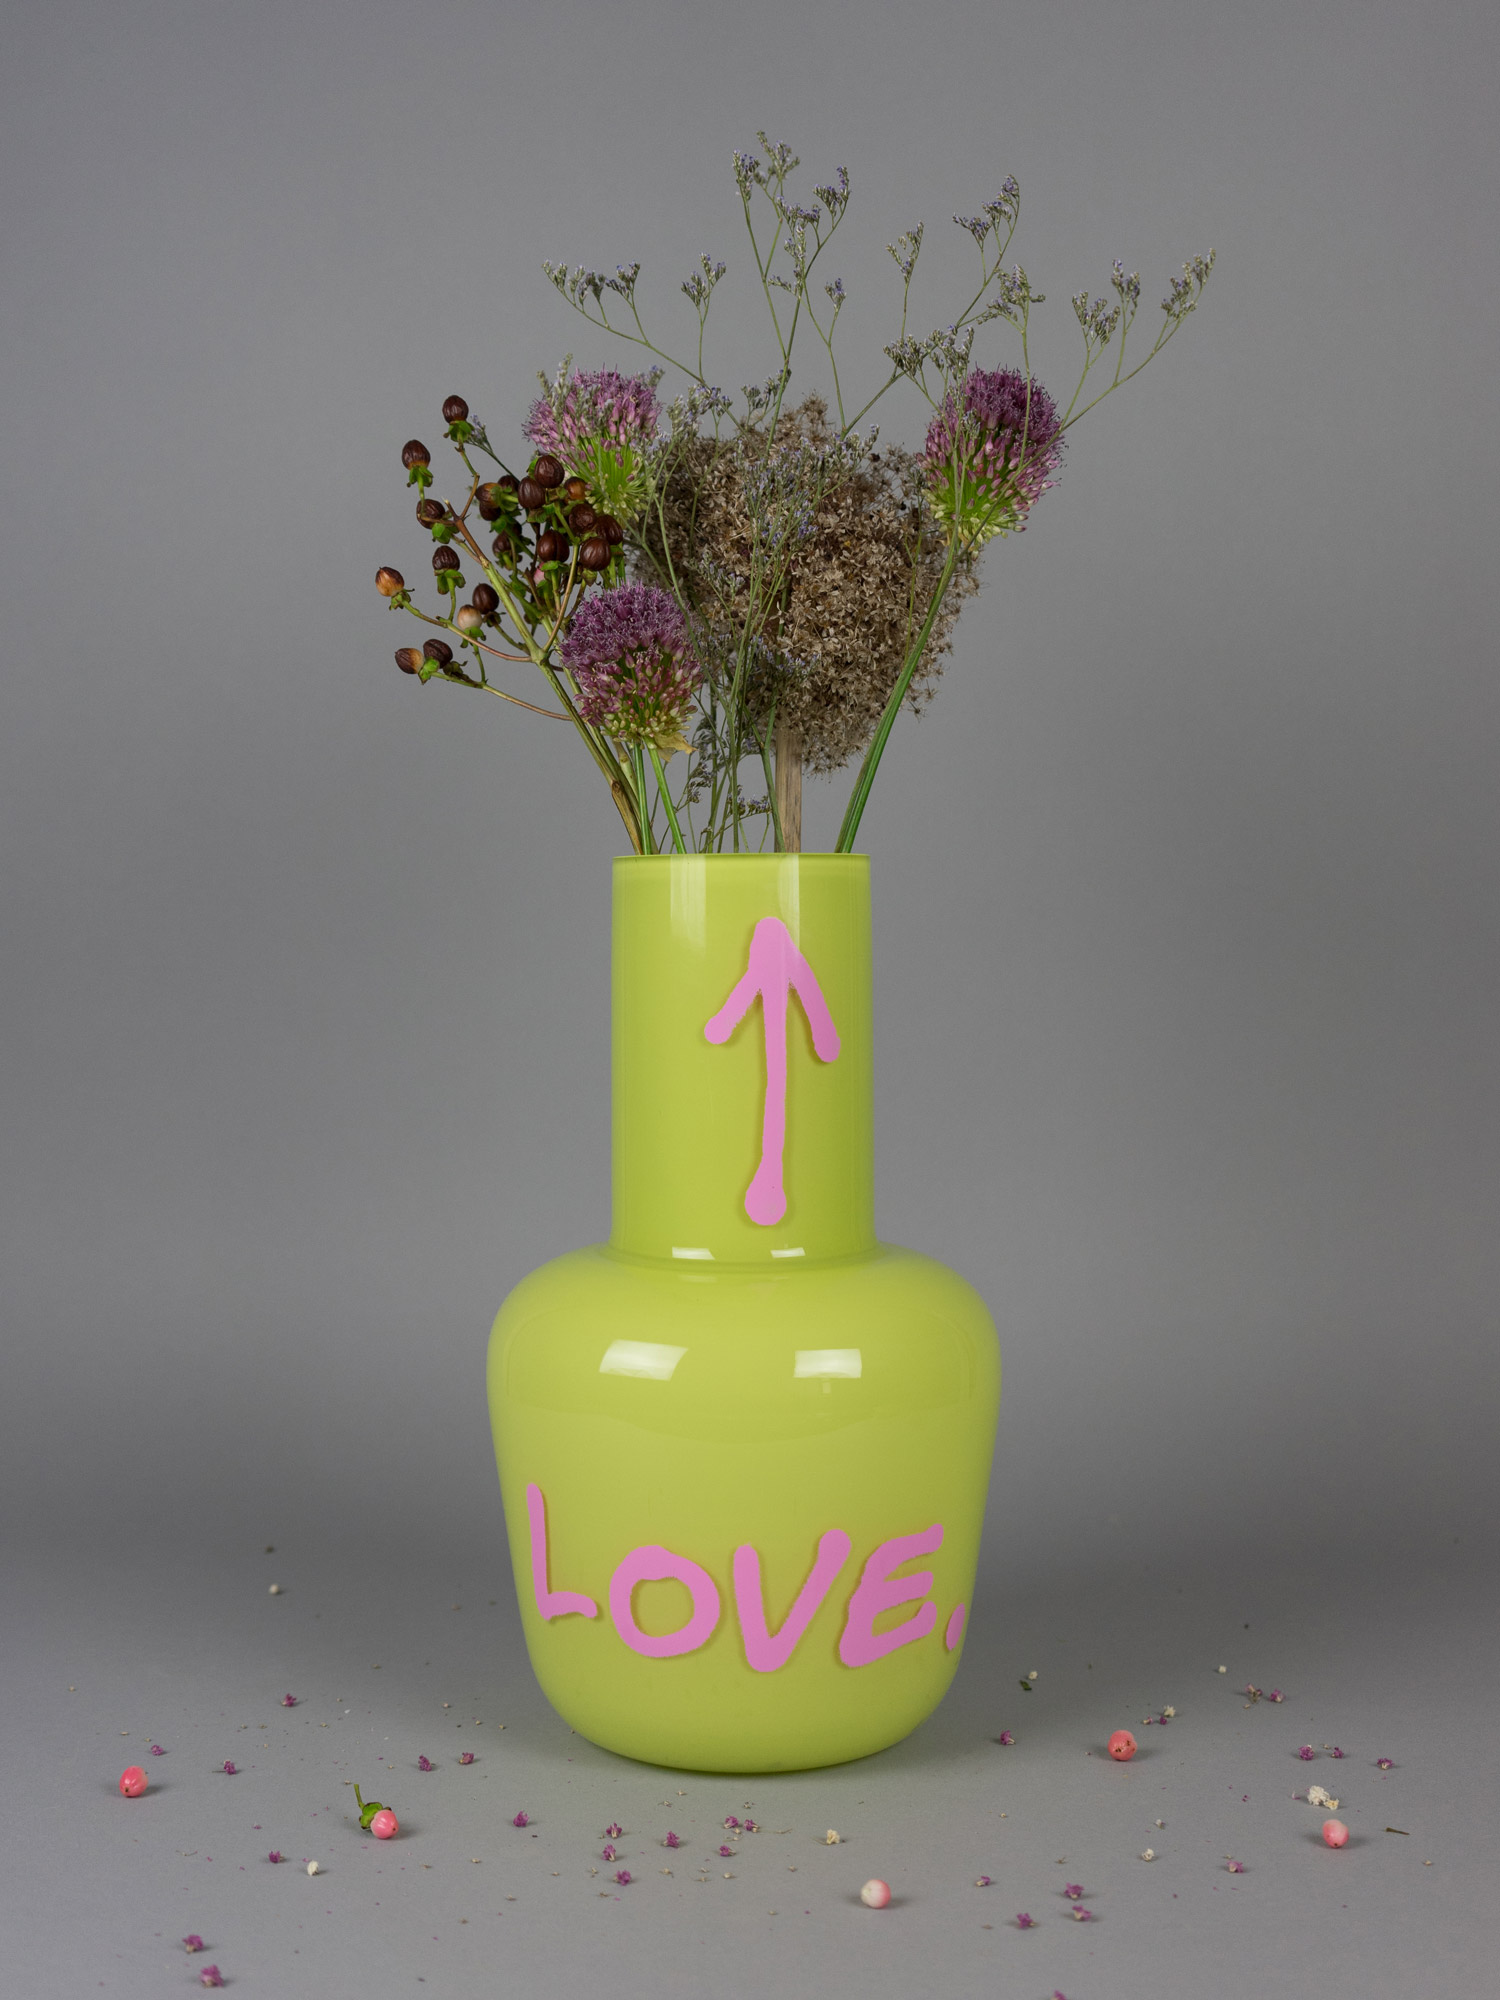 Unnamed neon yellow love vase by Qubus with flowers as decoration